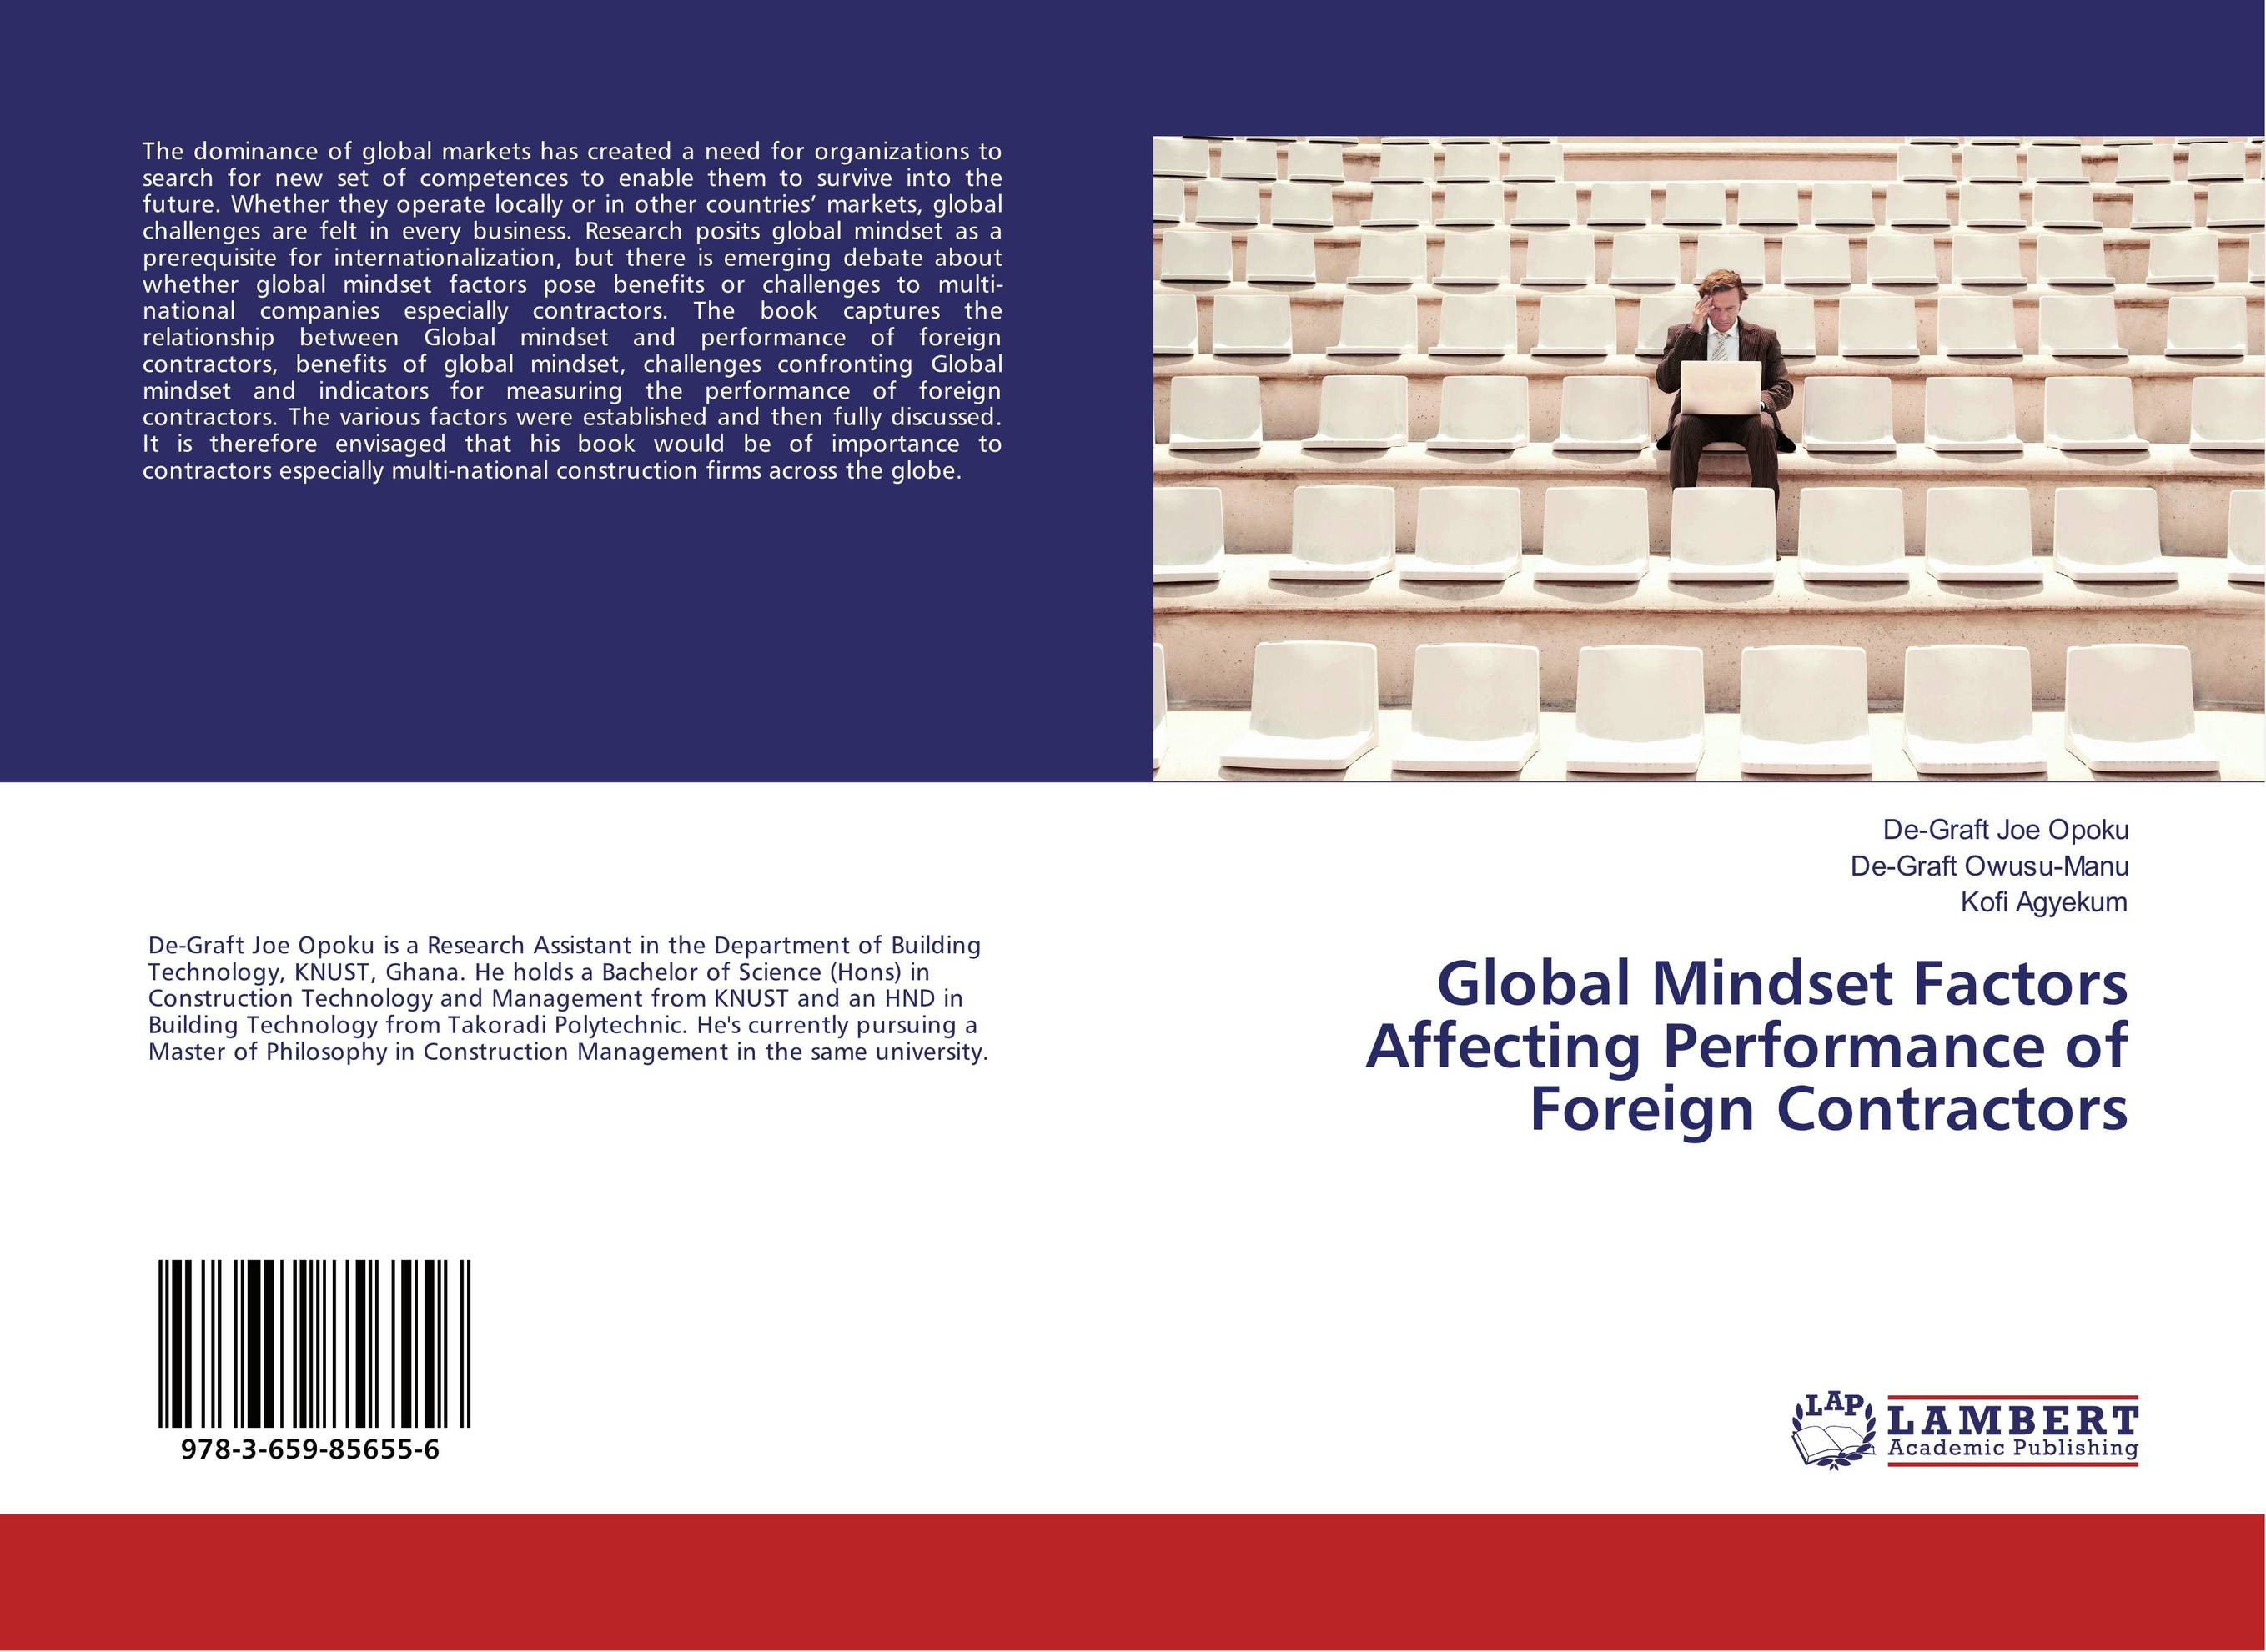 Global Mindset Factors Affecting Performance of Foreign Contractors mastering english through global debate